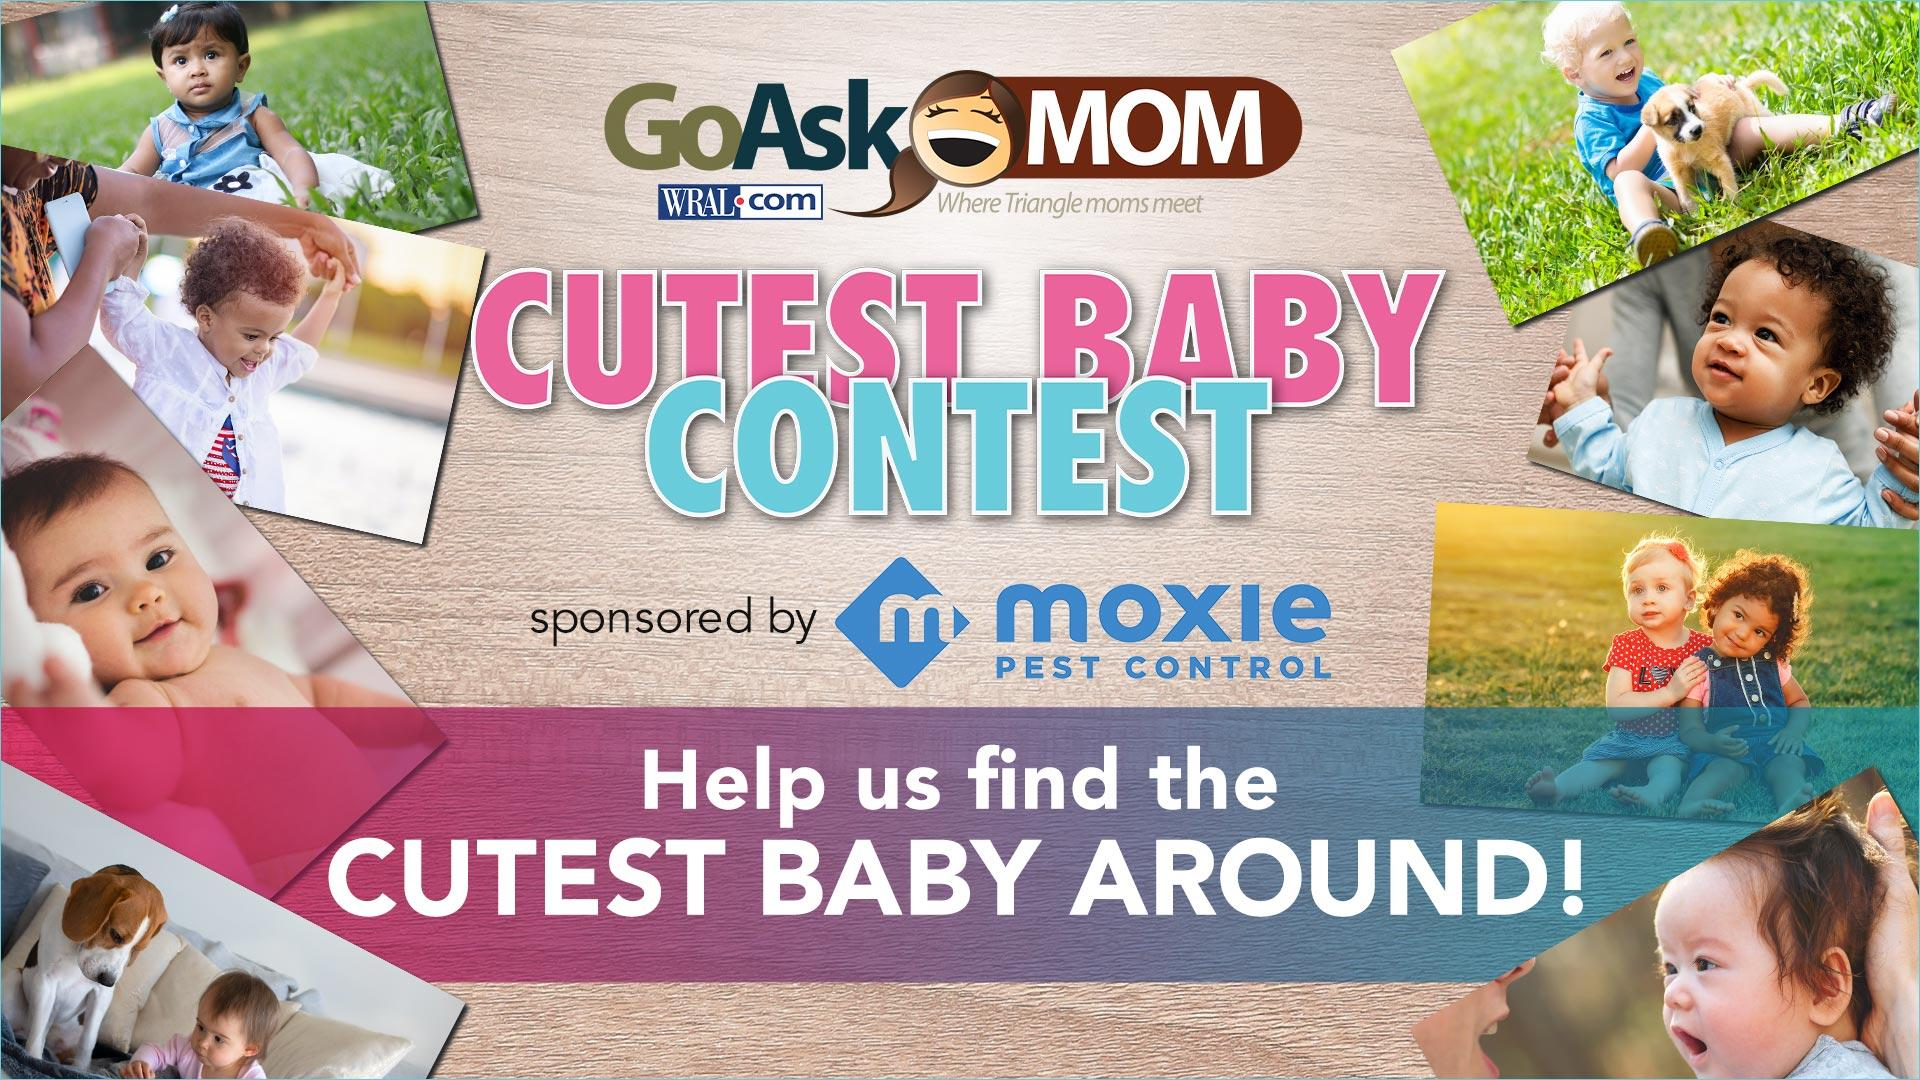 Help Go Ask Mom find the cutest baby around :: WRAL com